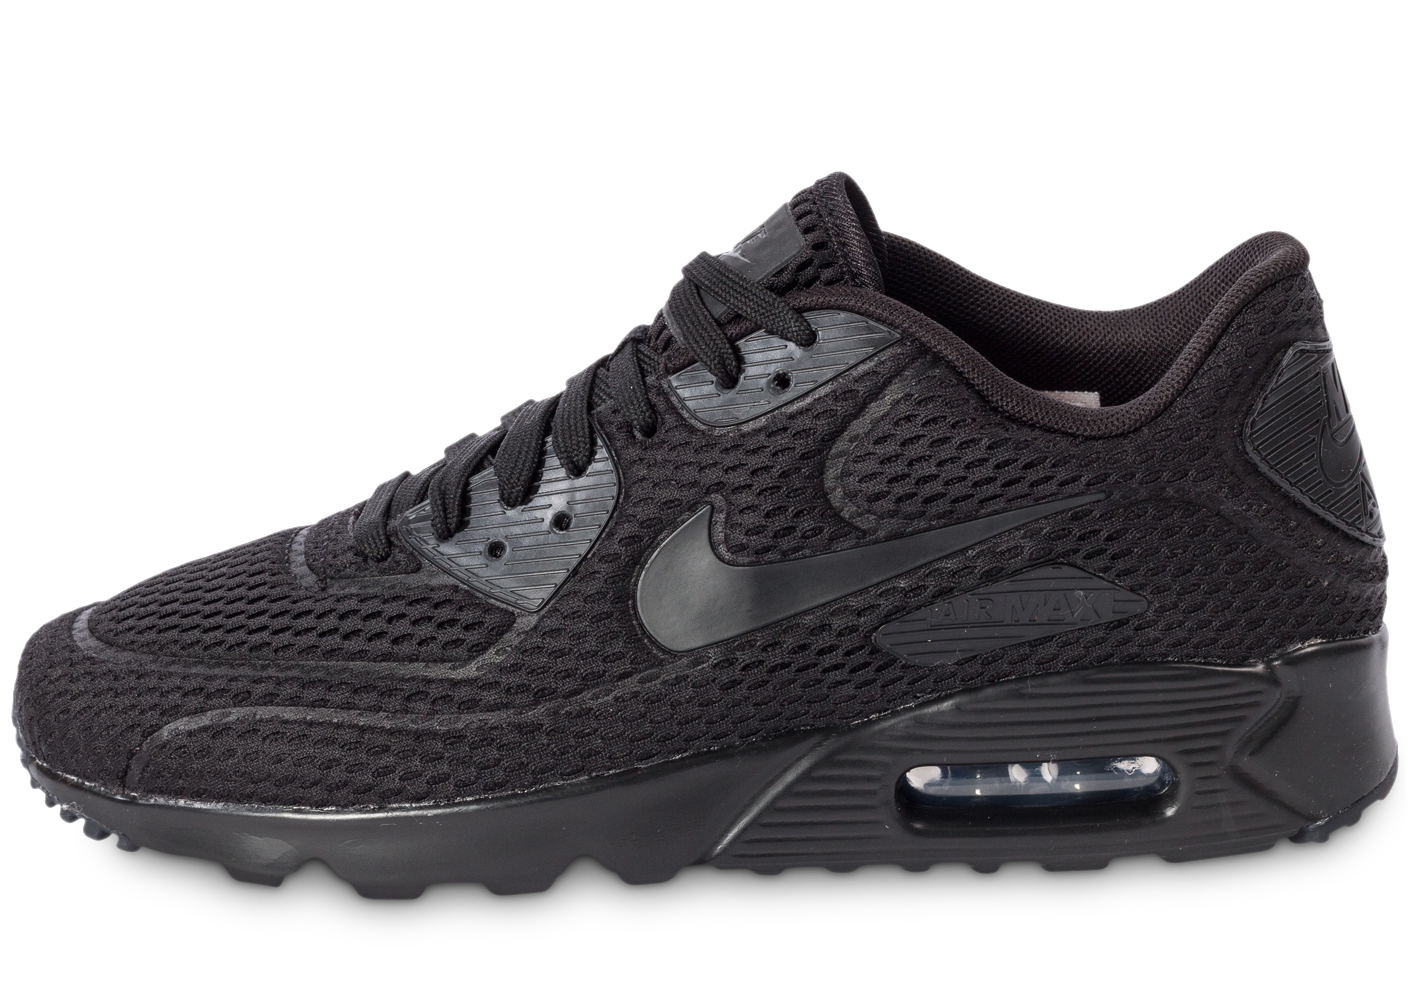 sports shoes b7f4a ee4f4 ... purchase nike air max 90 basketsboot rose argent nike air max 90  basketsboot blanc . a9425